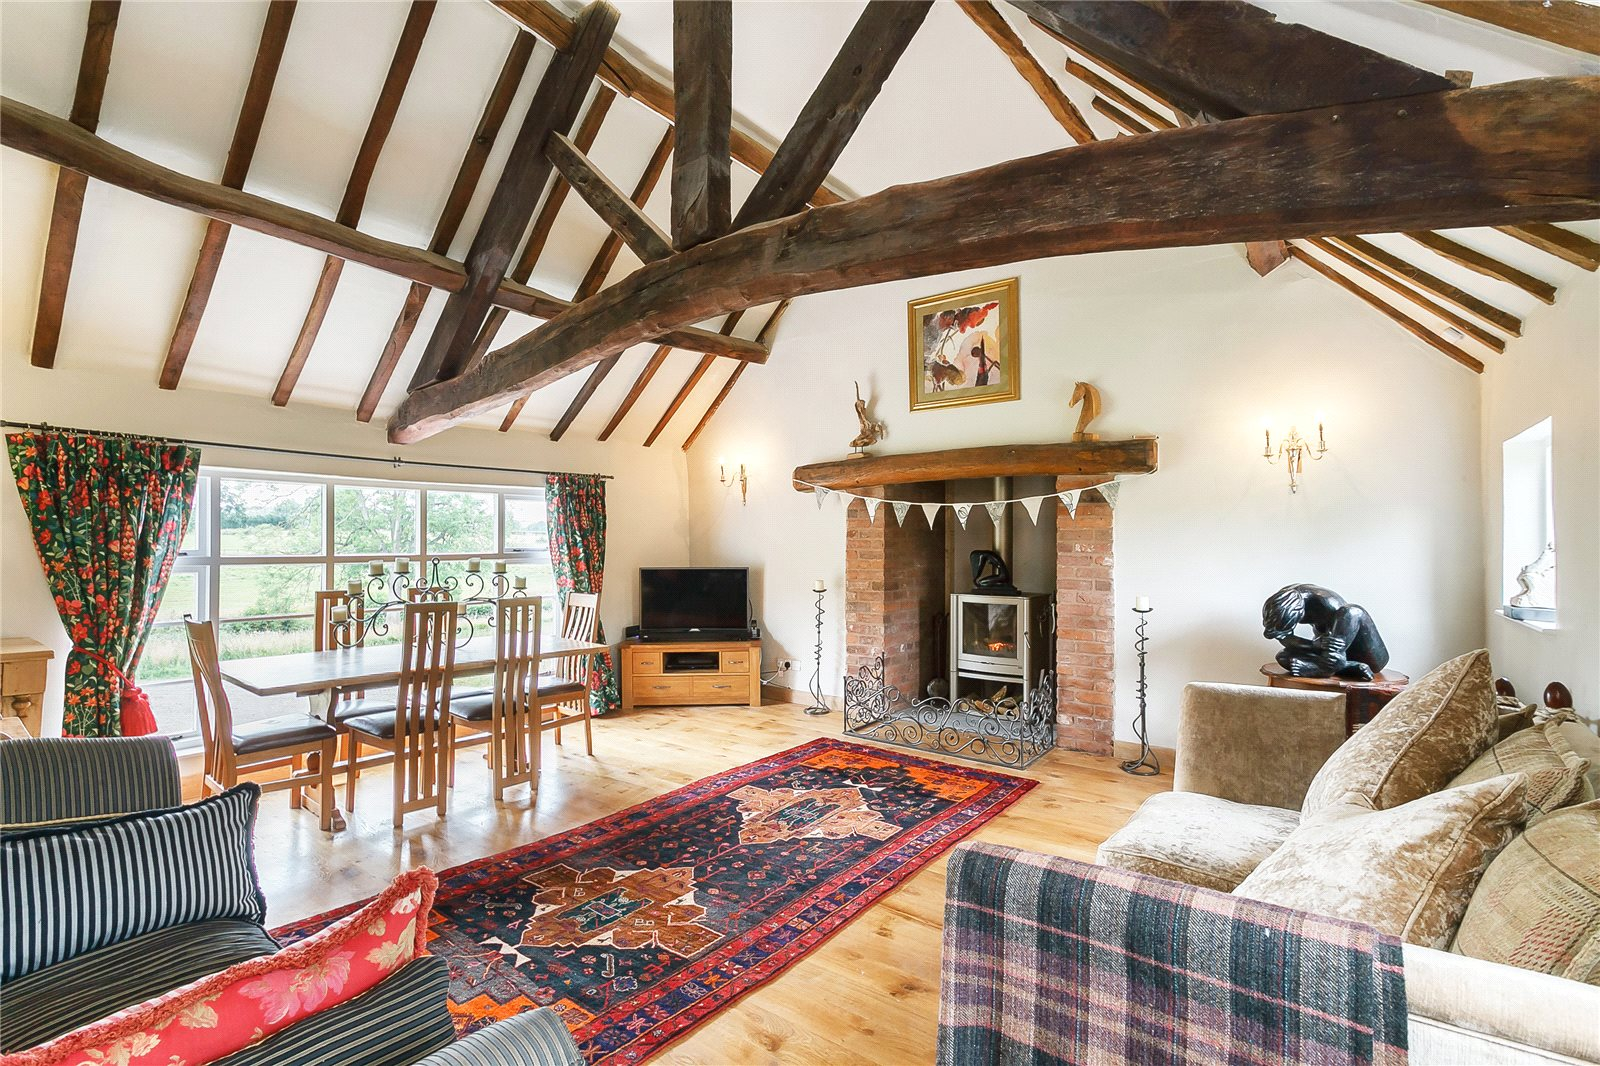 Additional photo for property listing at Oldwood Common, Tenbury Wells, Worcestershire, WR15 Tenbury Wells, Angleterre